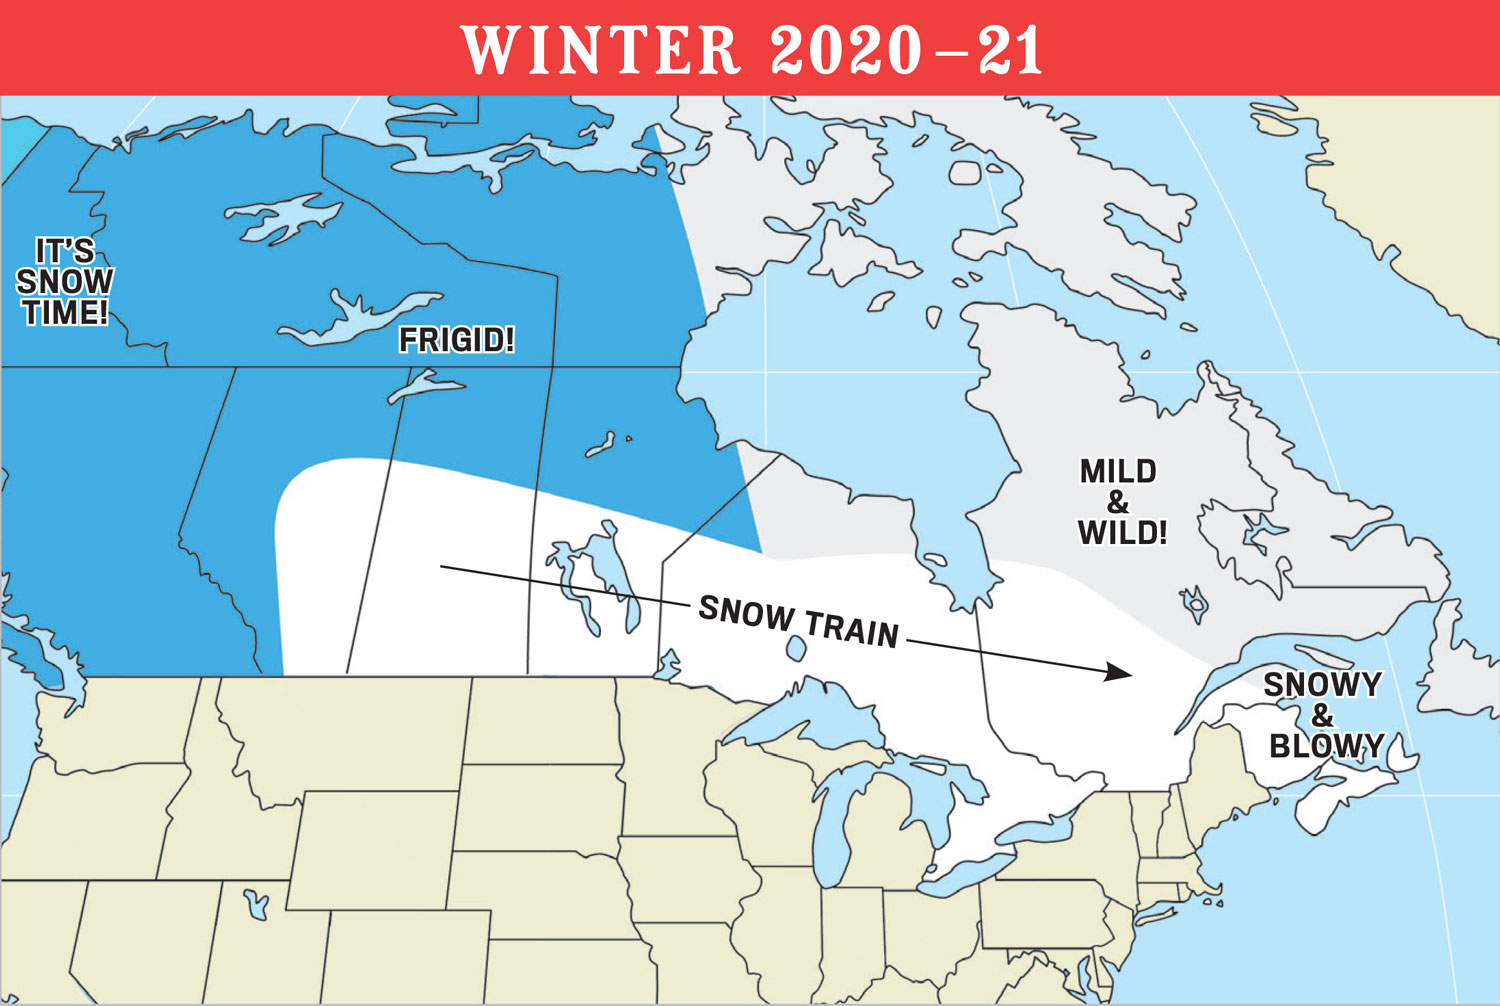 Canada Snowfall Map Snow train' expected to bring storms across much of Canada this winter